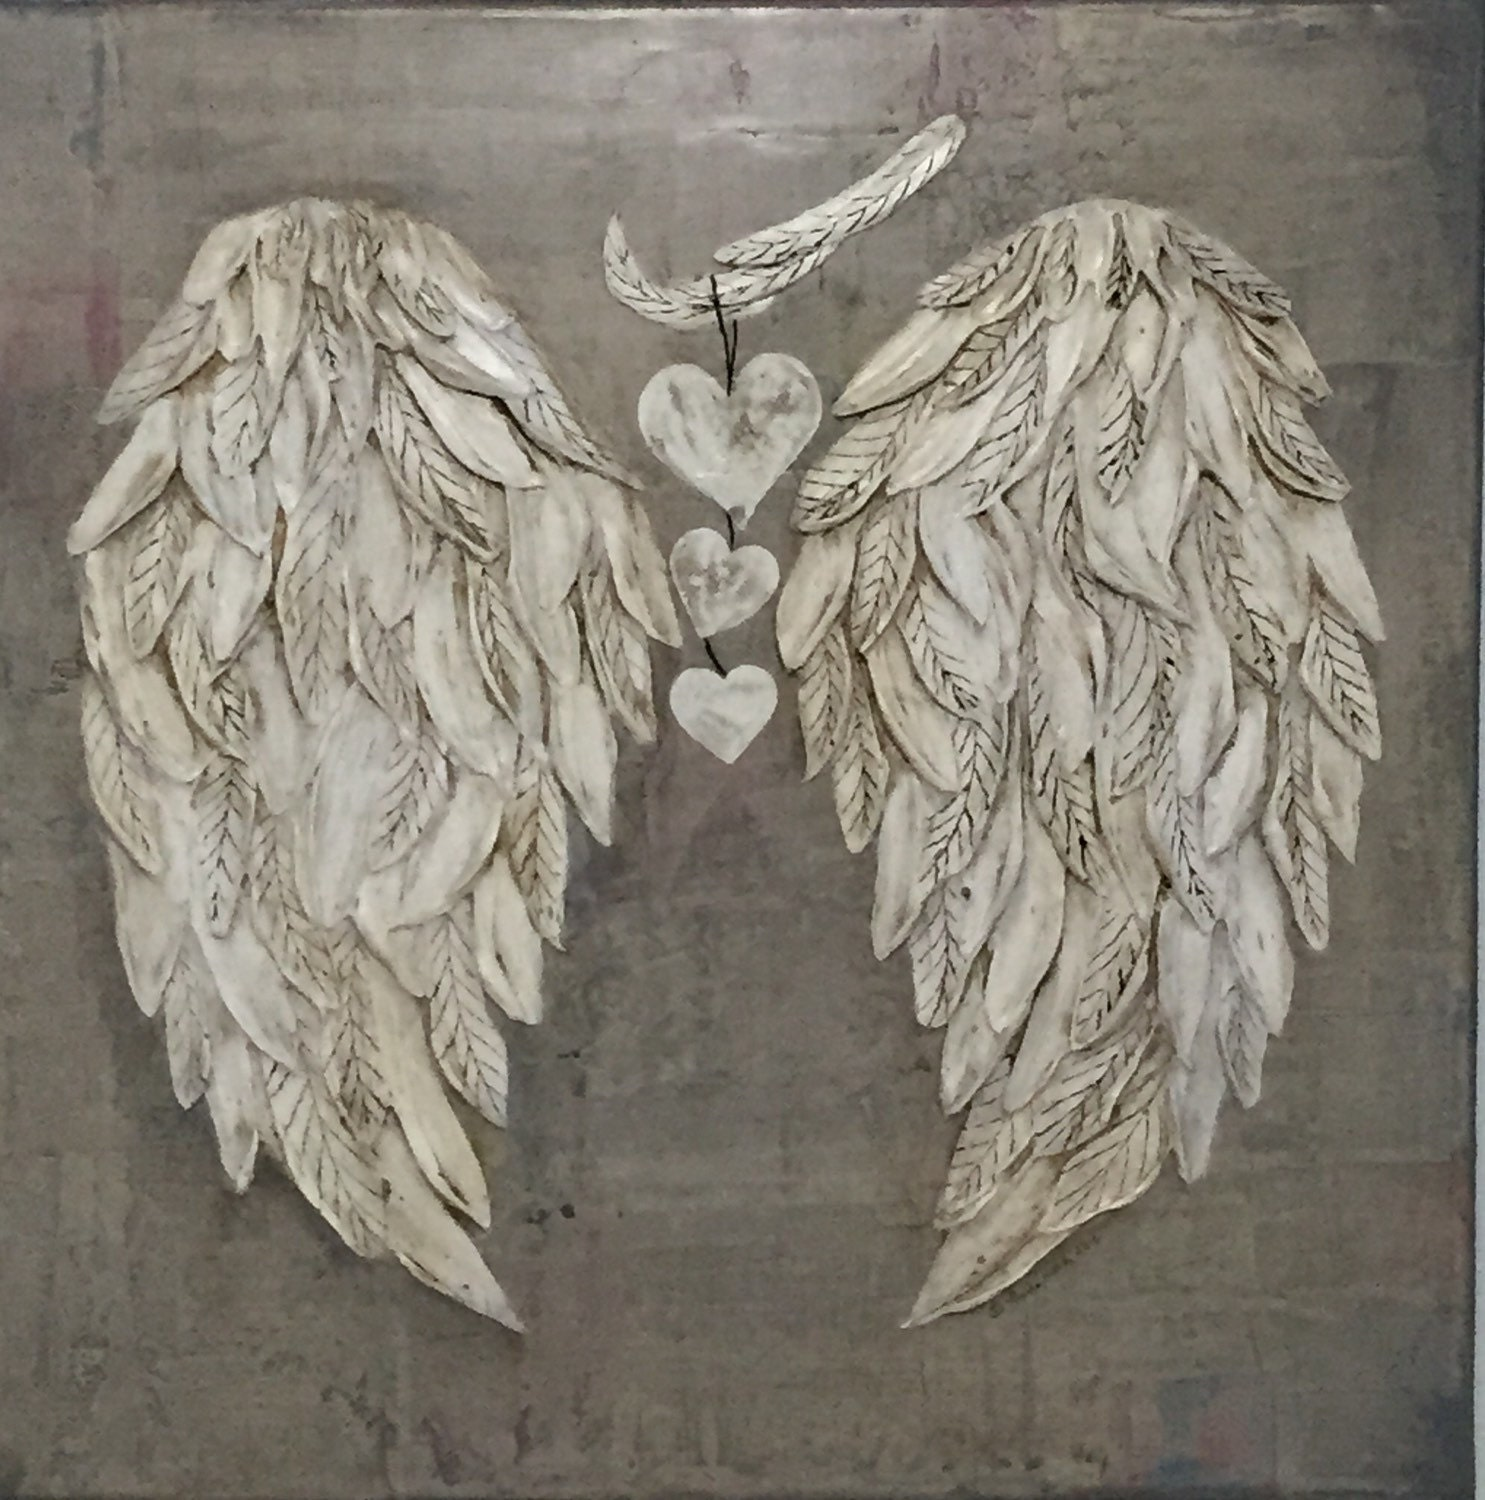 Decorative Wall Hanging Angel Wings : Angel wings wall decor with hearts by designsbylindahardy